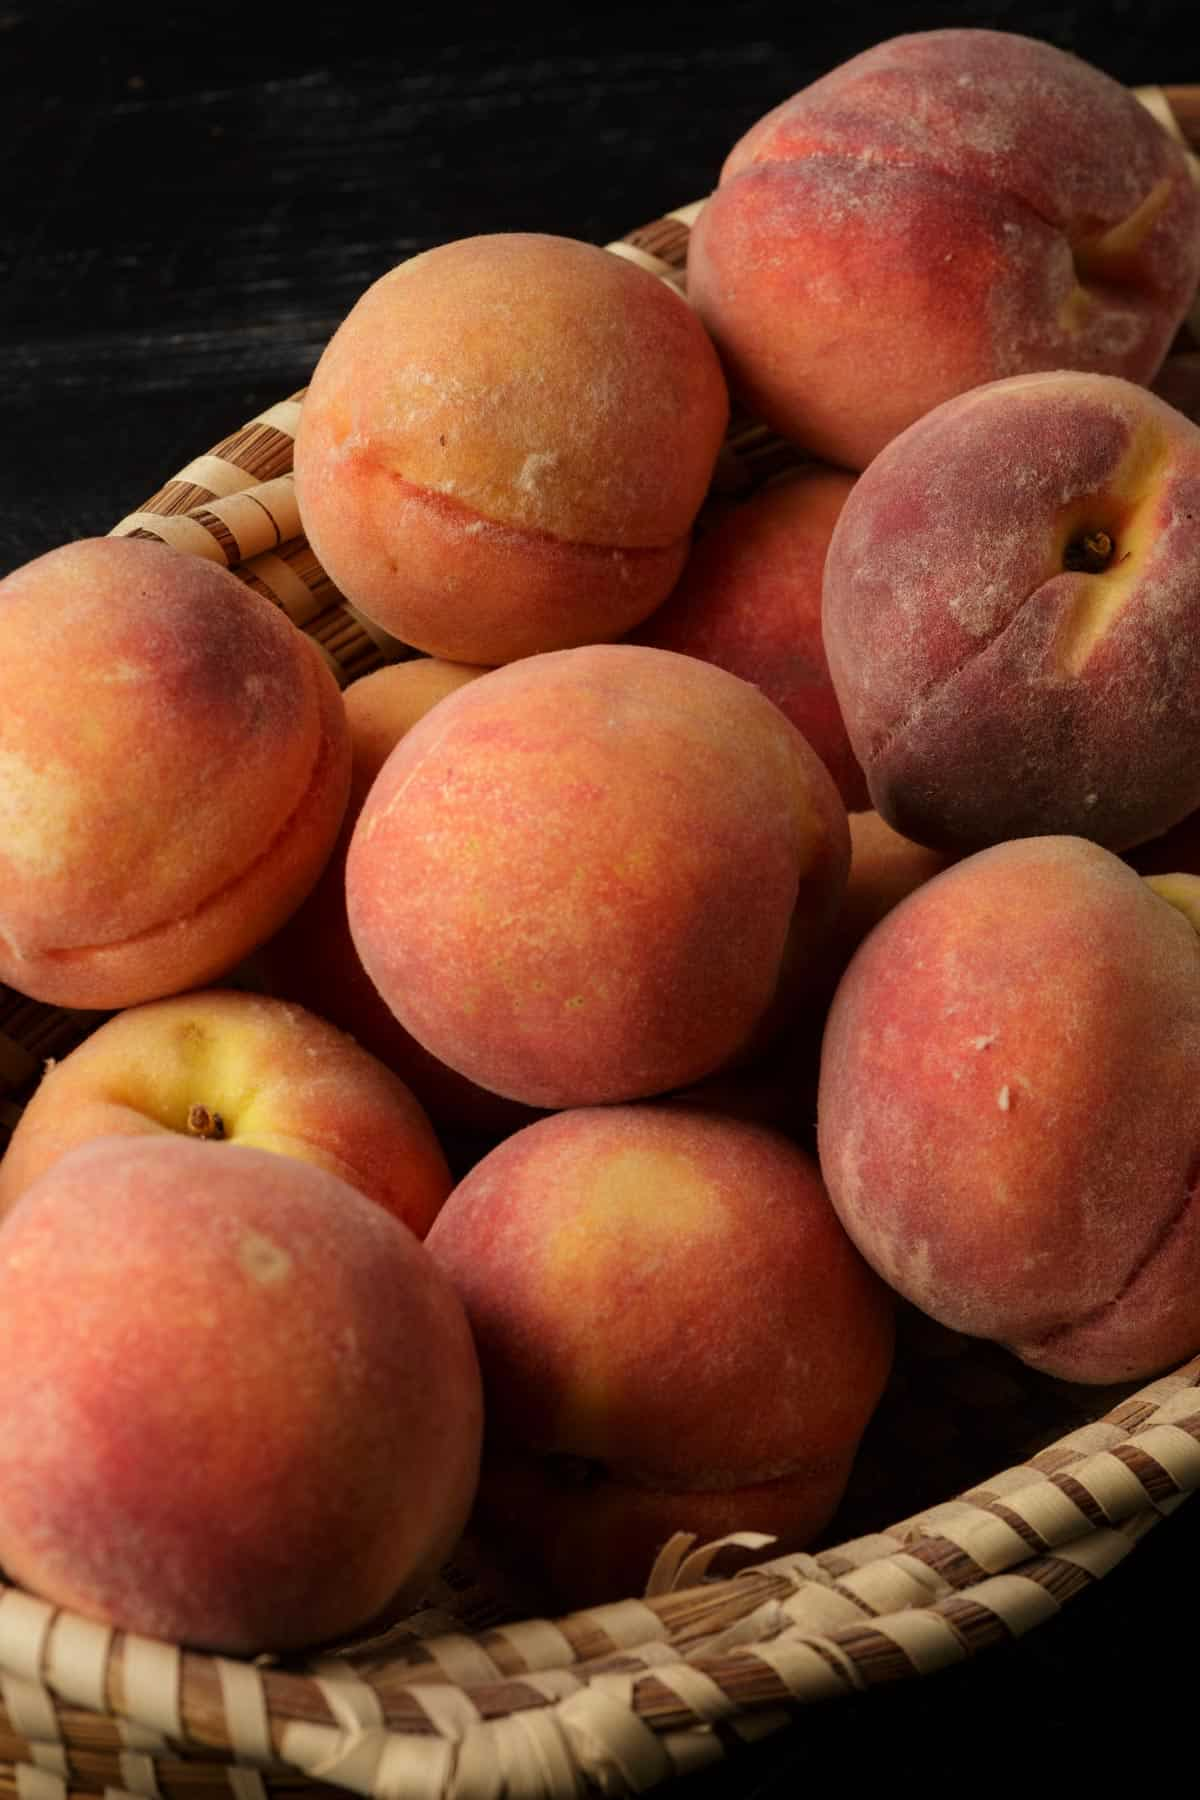 A basket with peaches from the farmers market